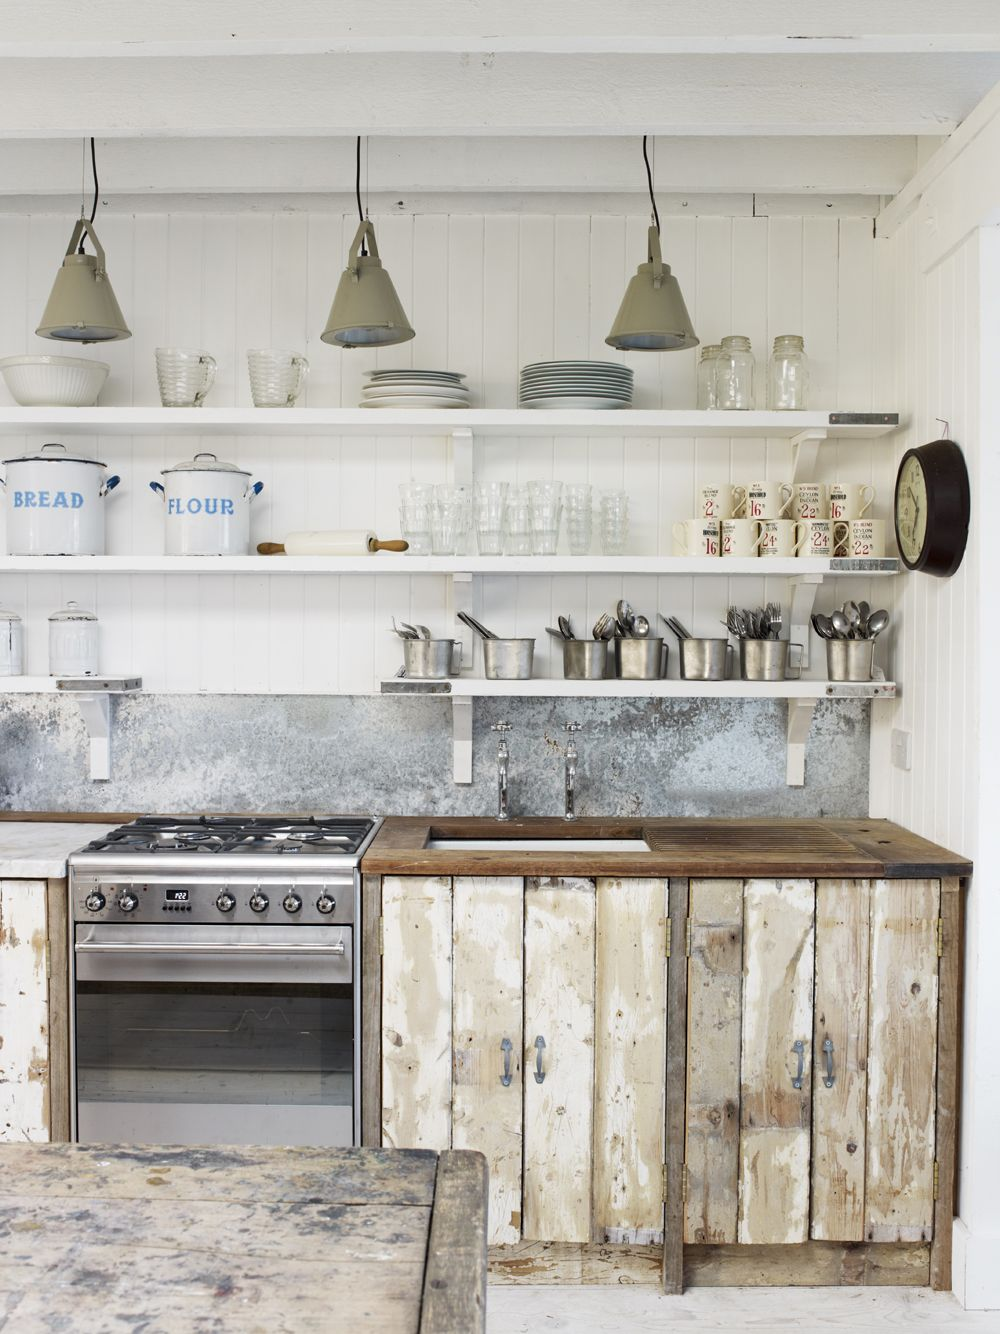 Rustic Industrial Kitchen Rustic Beachy Industrial Kitchen Dining The White Cabin